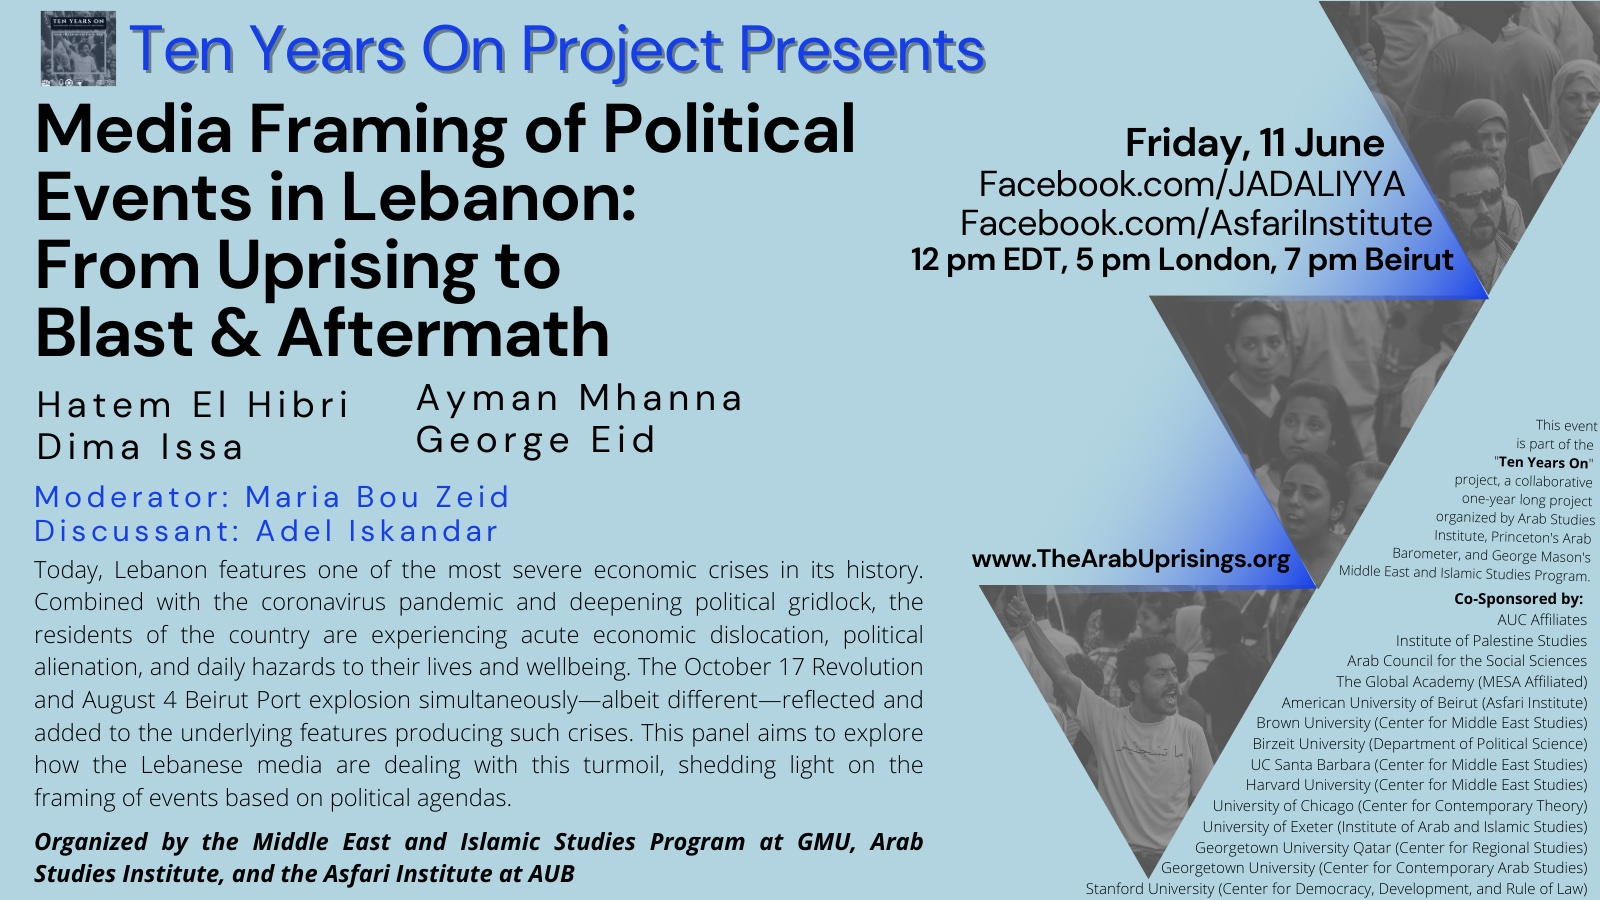 event flyer for Media Framing of Political Events in Lebanon